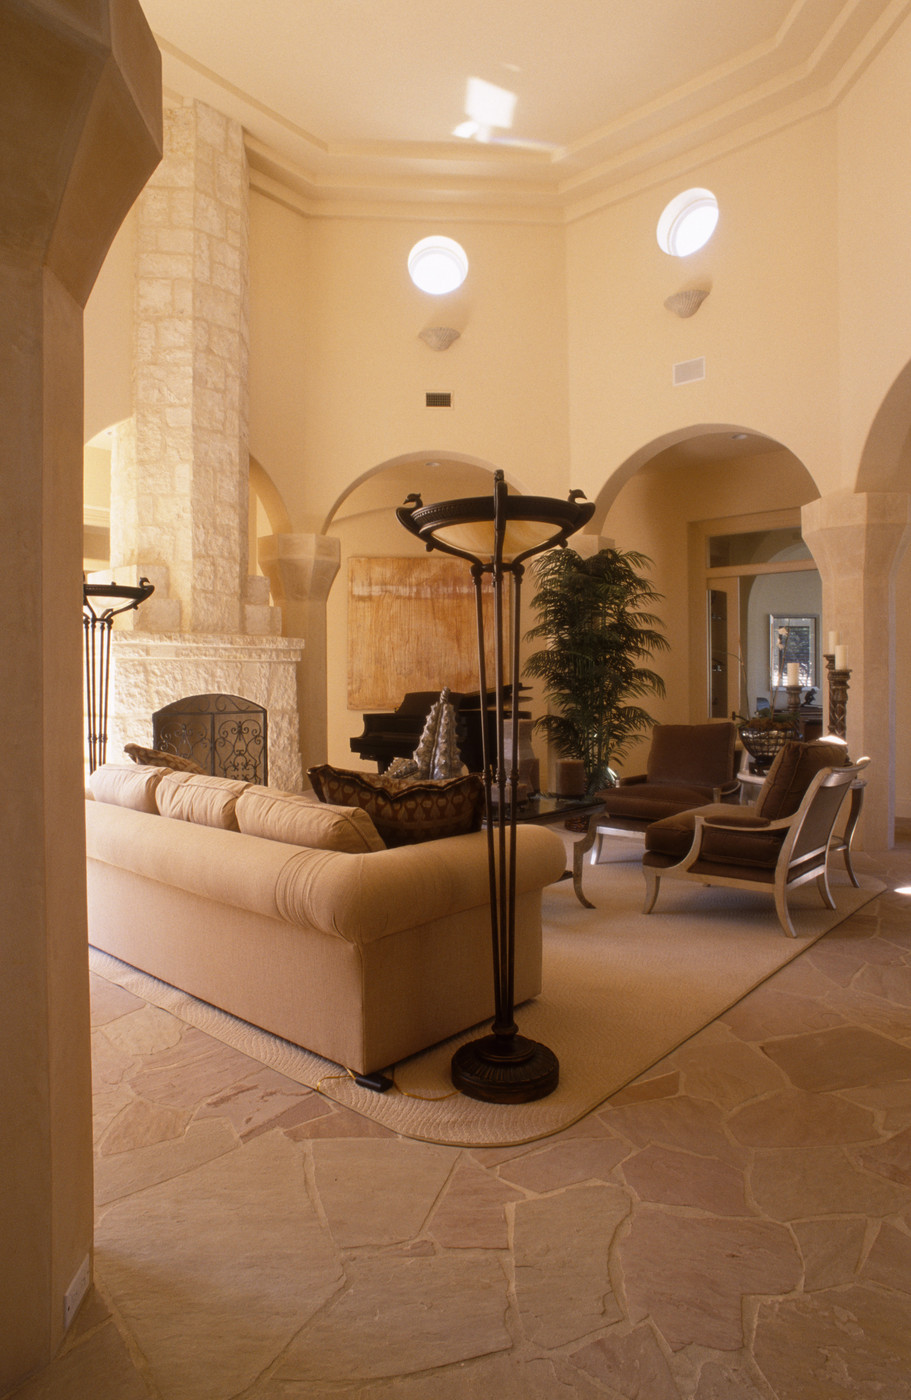 Best ideas about Family Room Design . Save or Pin Beige Contemporary Mediterranean Family Room Living Room Now.